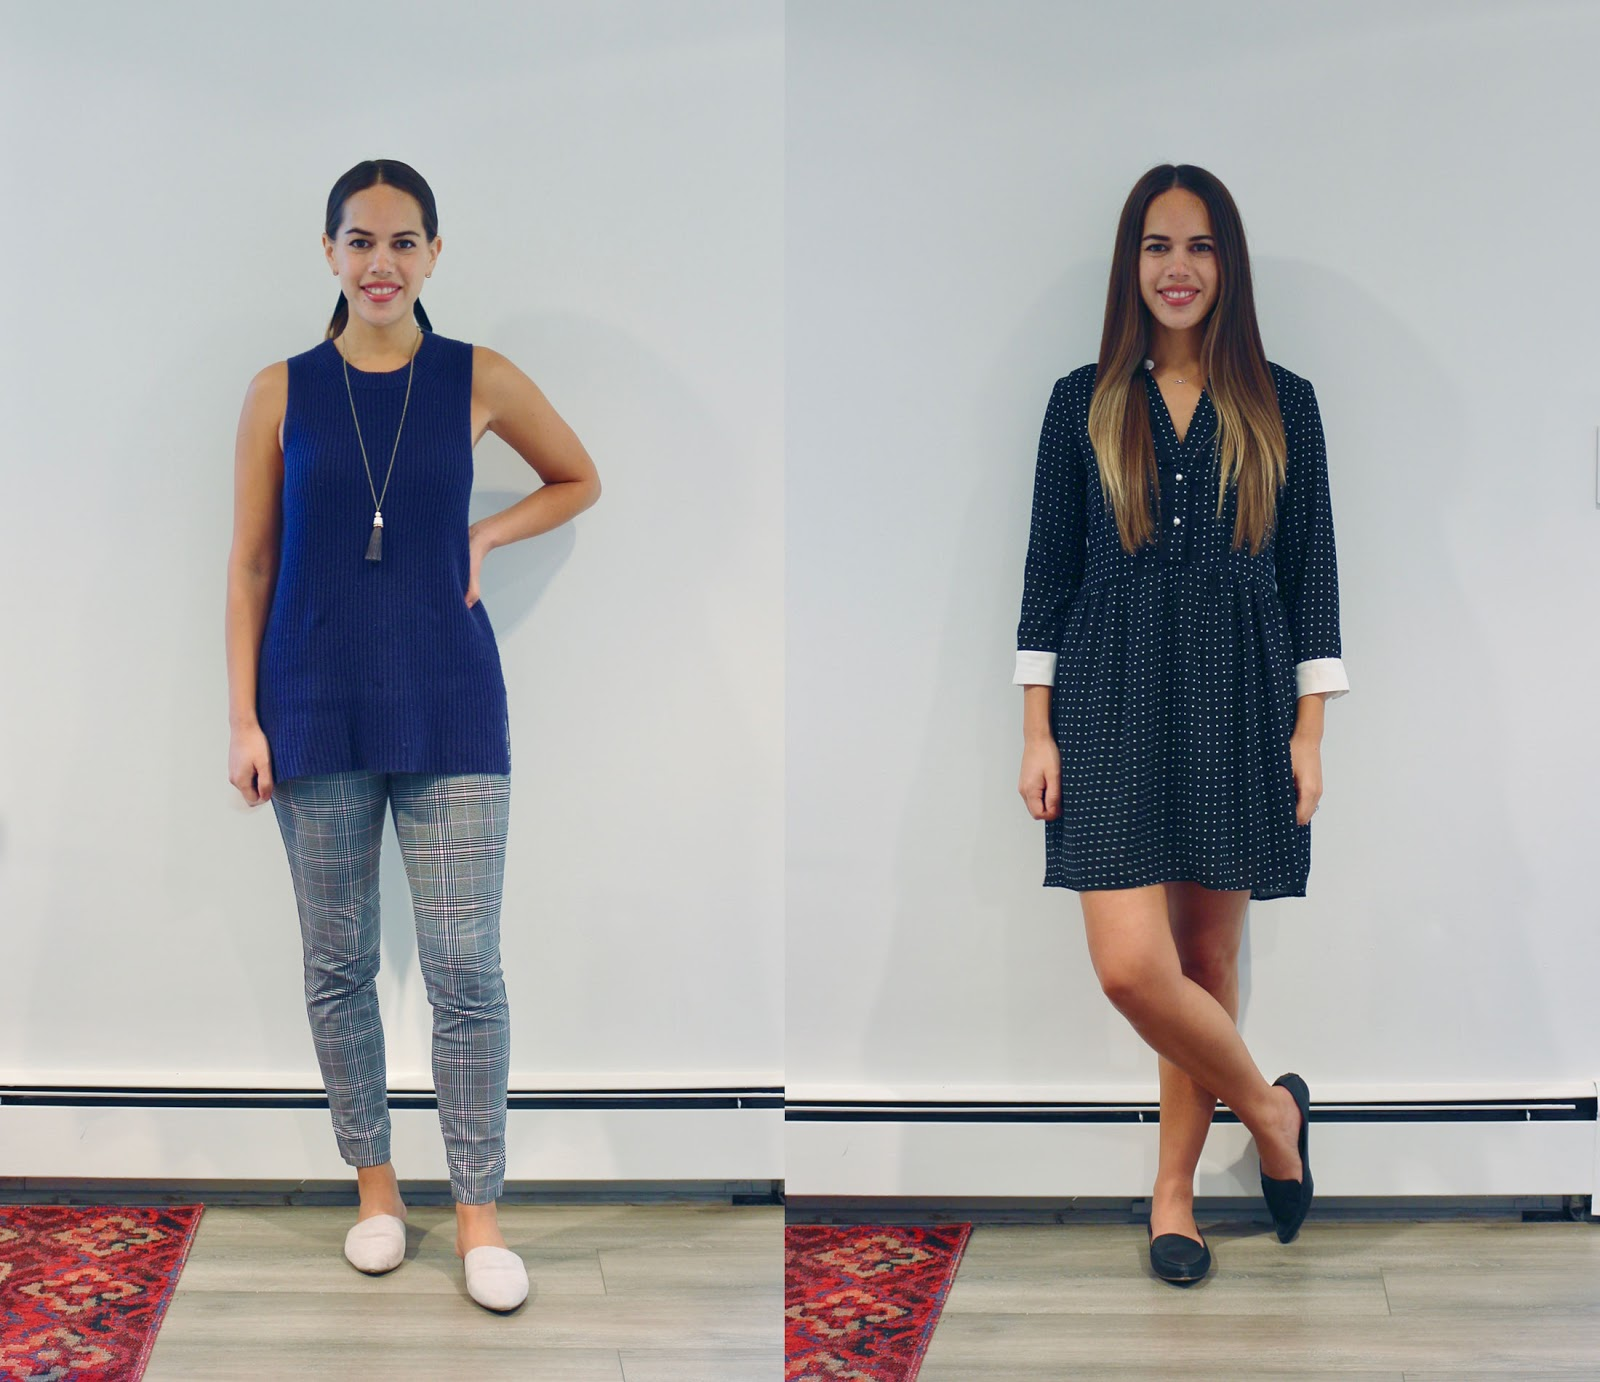 Jules in Flats September Outfits(Business Casual Workwear on a Budget)